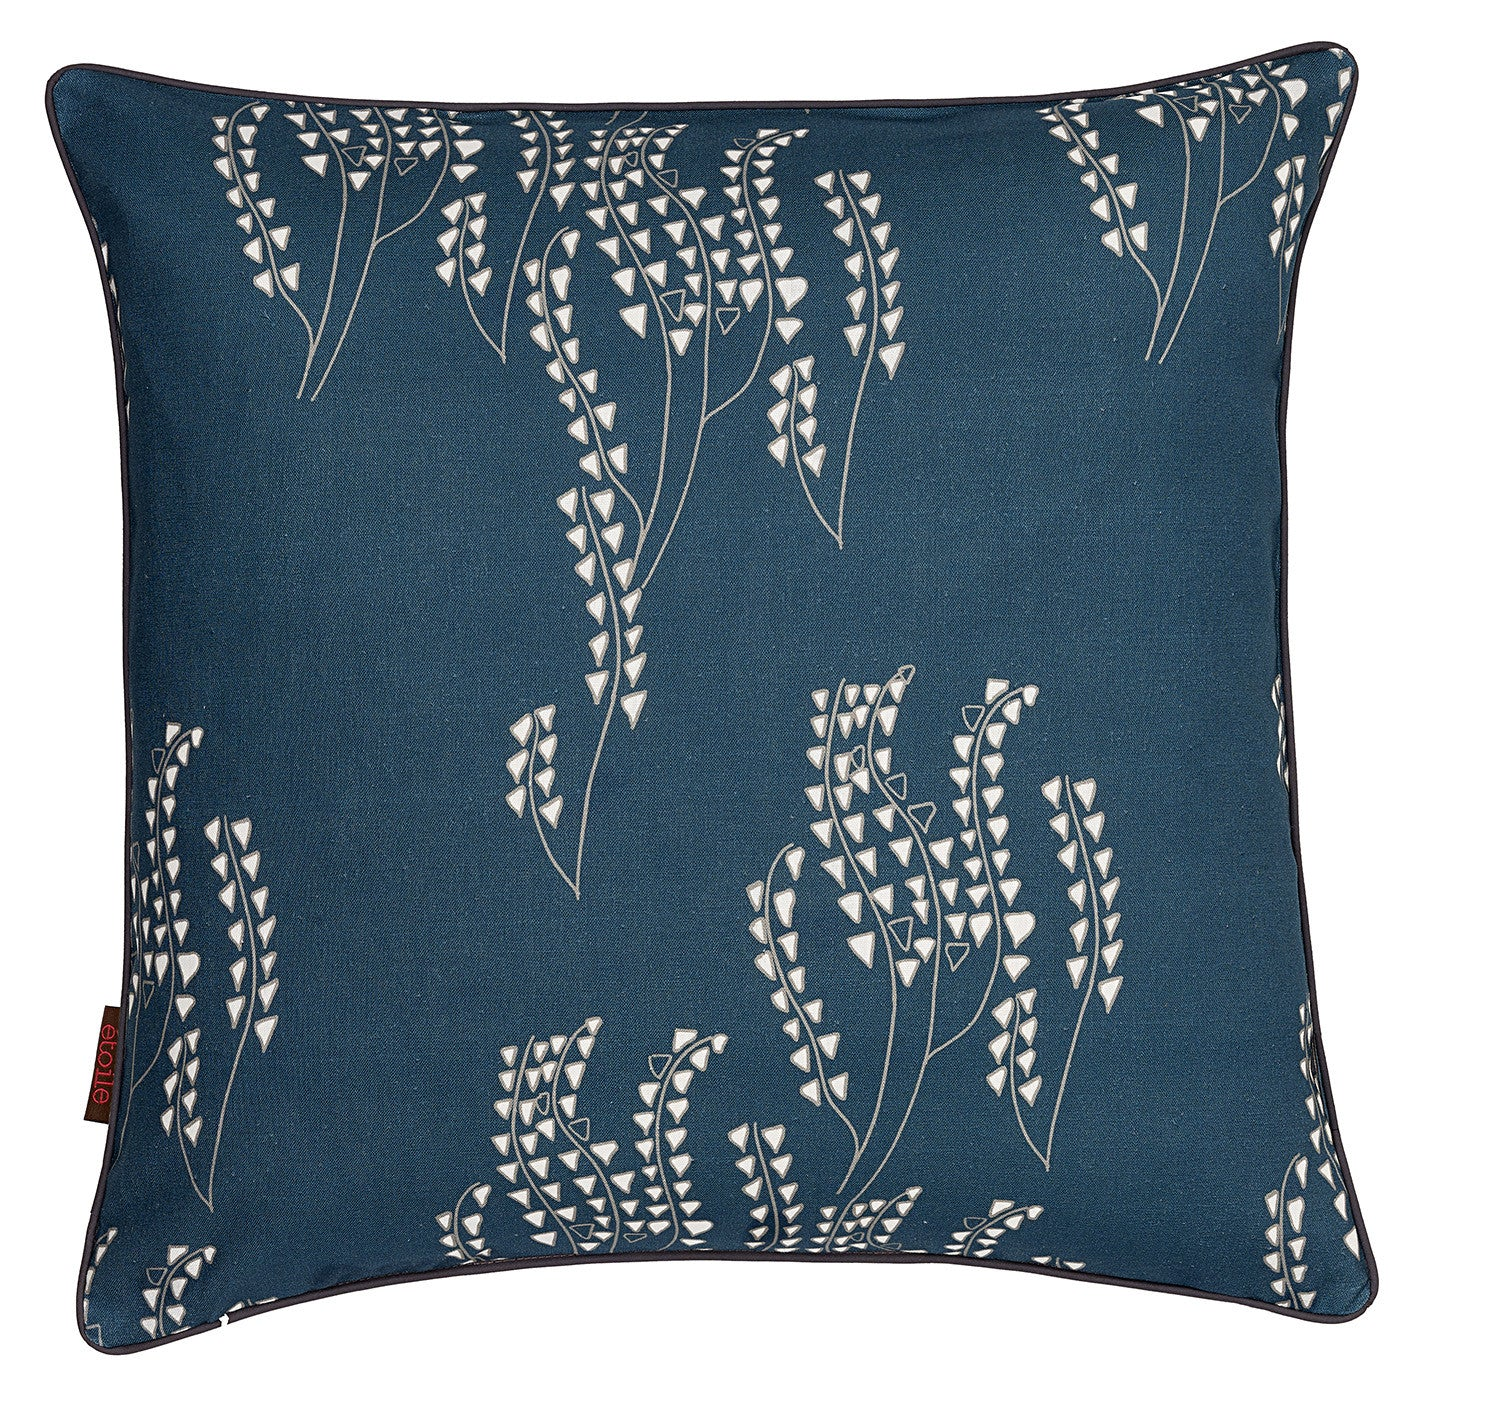 Yuma Graphic Grass Pattern Linen Cushion in Dark Petrol Blue and Grey